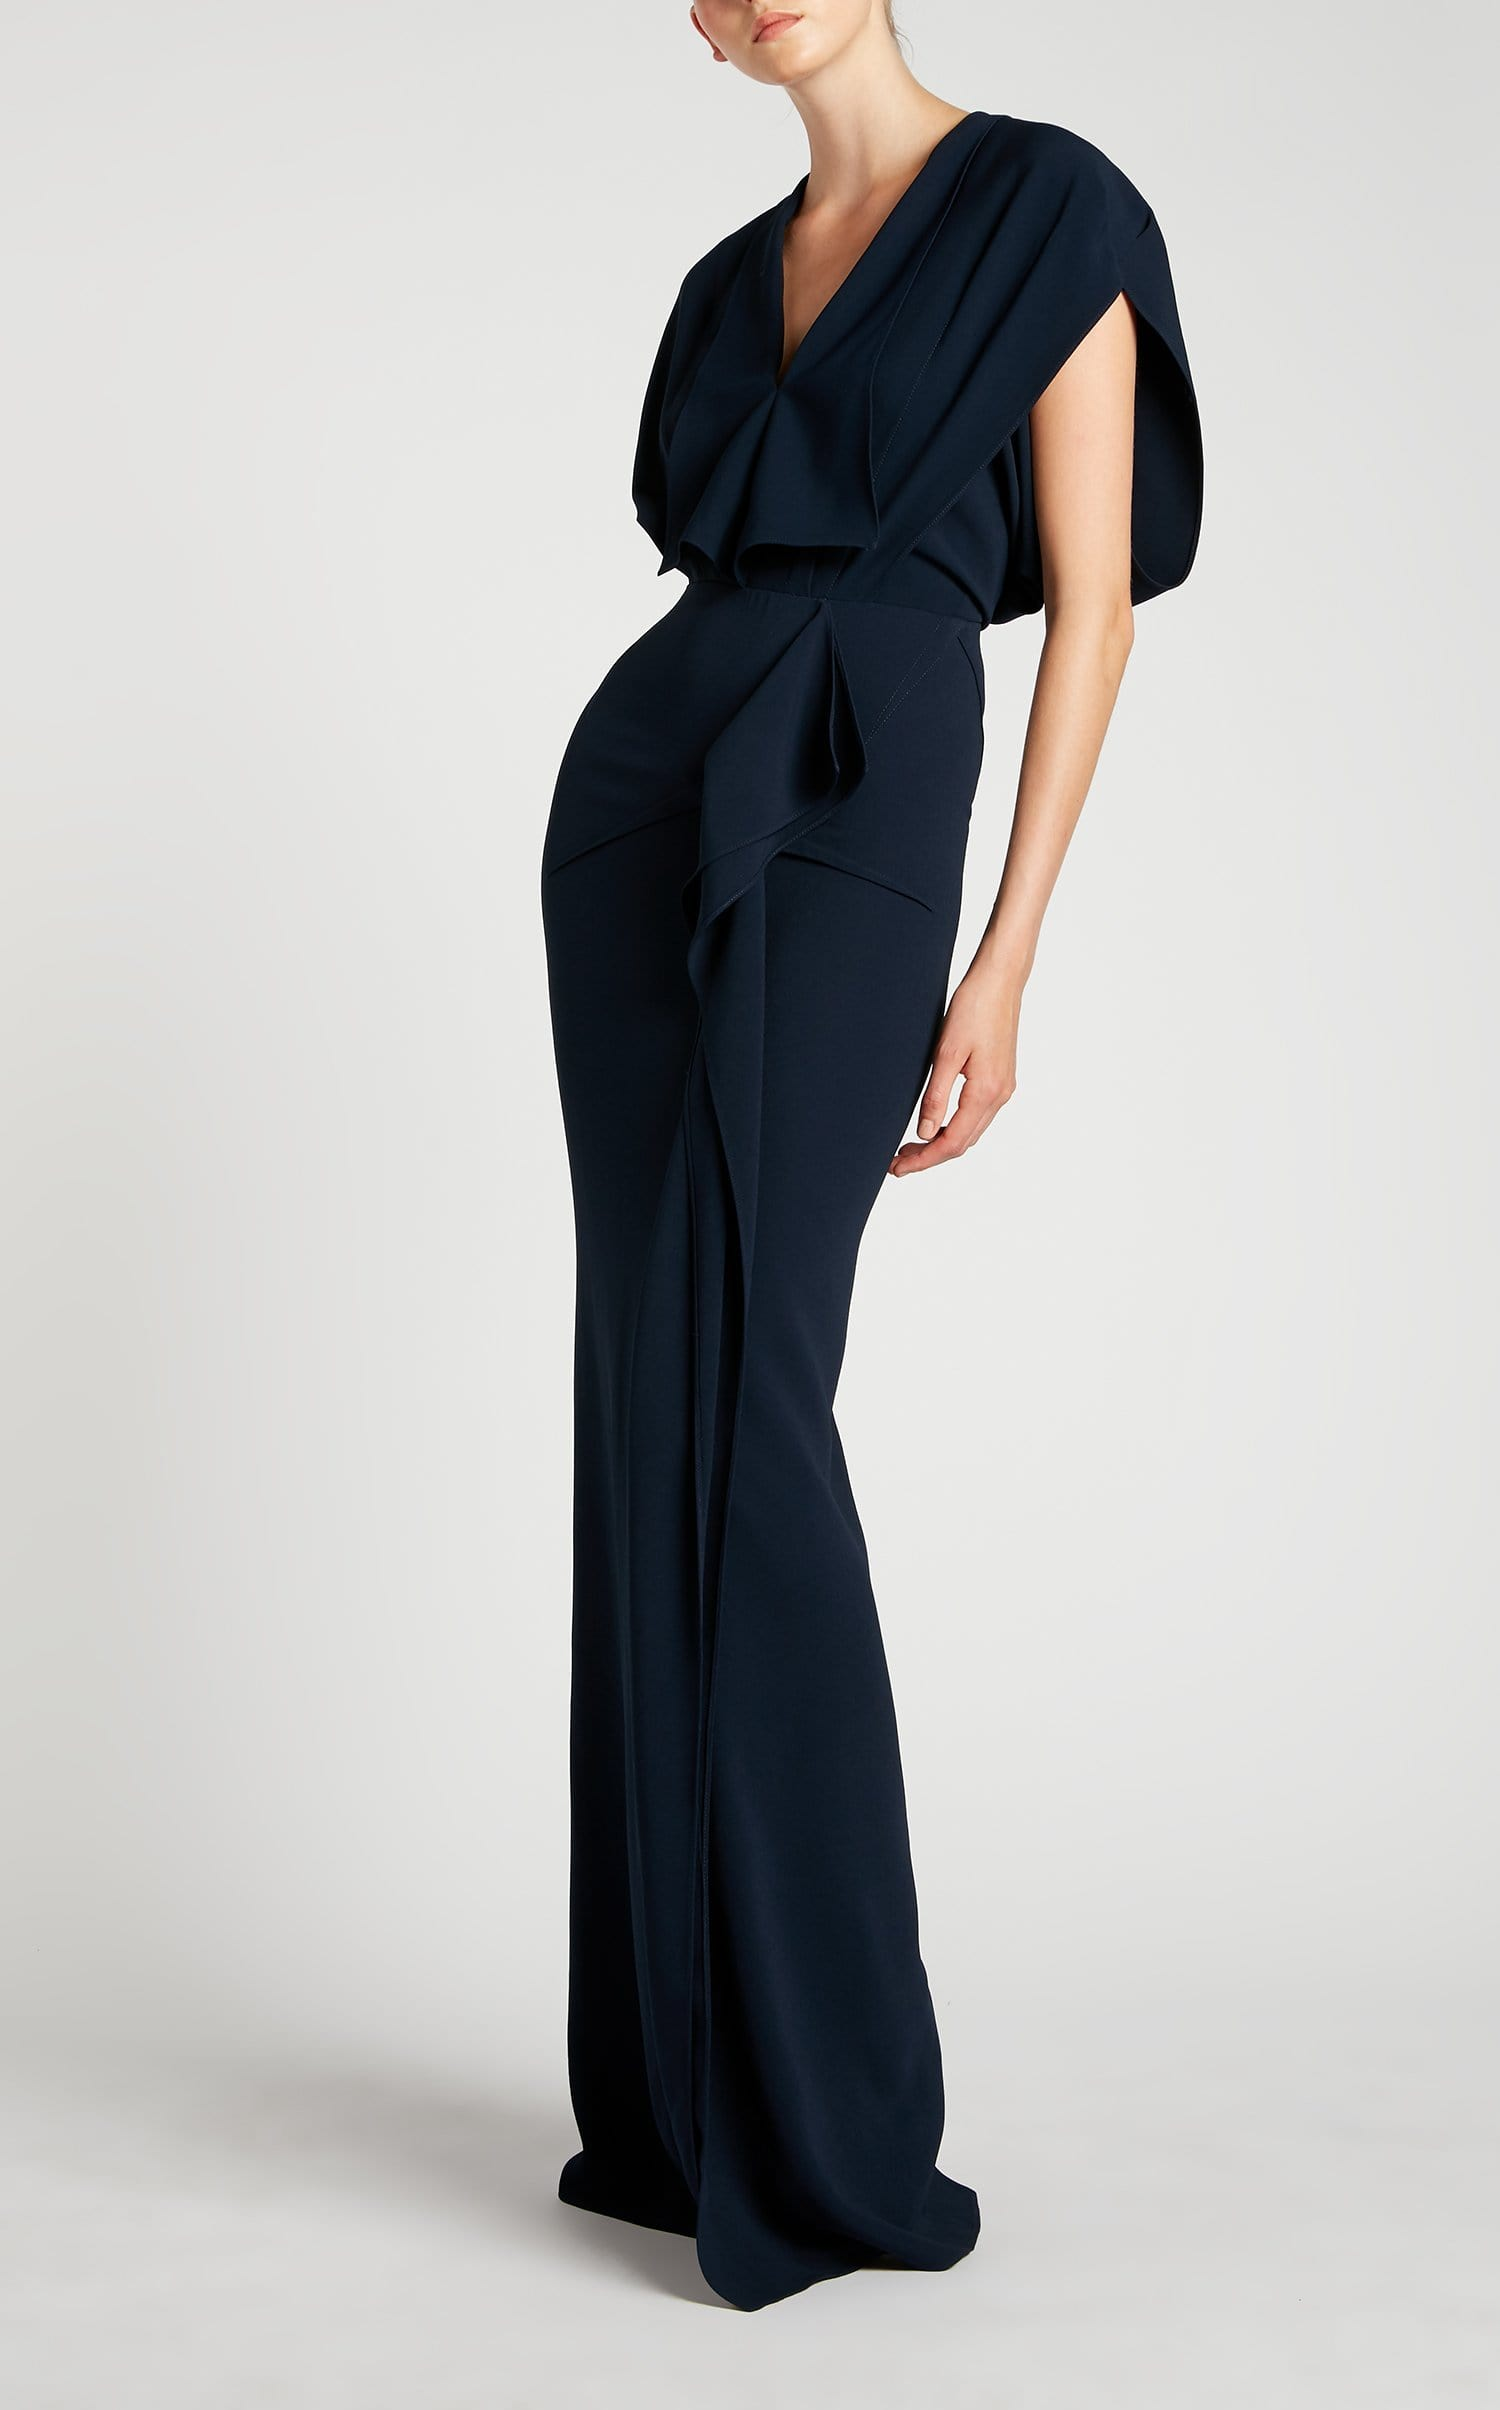 Lorre Gown